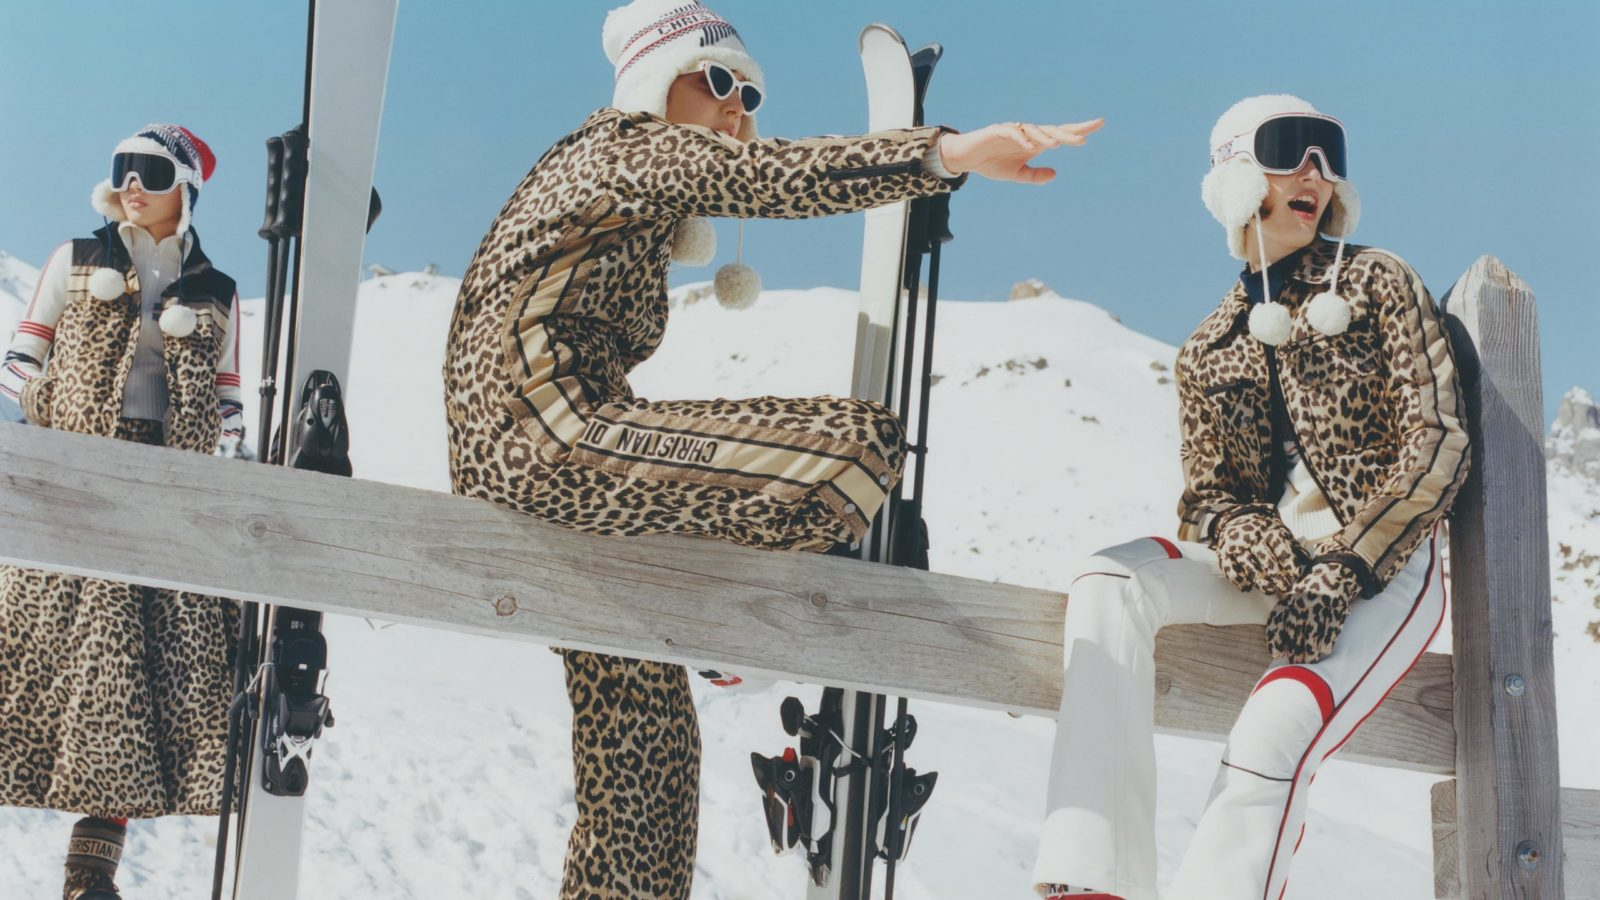 Sleigh! DiorAlps Has us All Pining for an Icy Winter Getaway